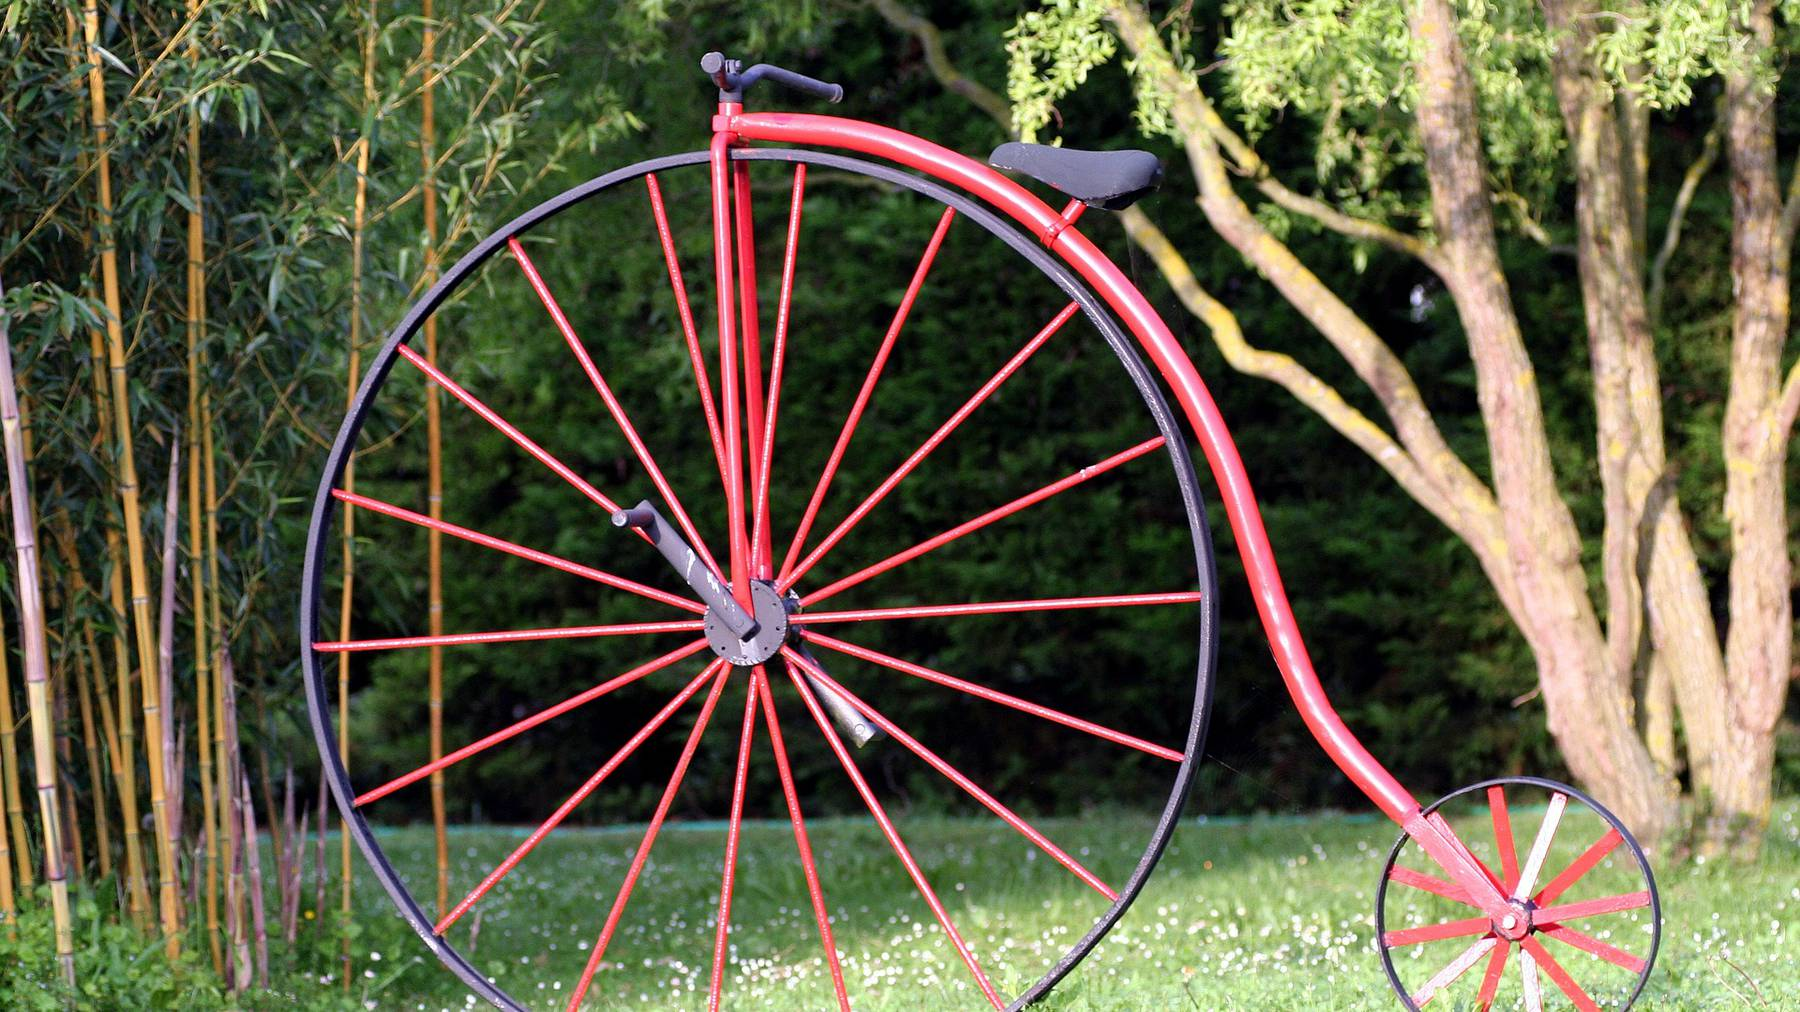 penny-farthing-1418149_1920